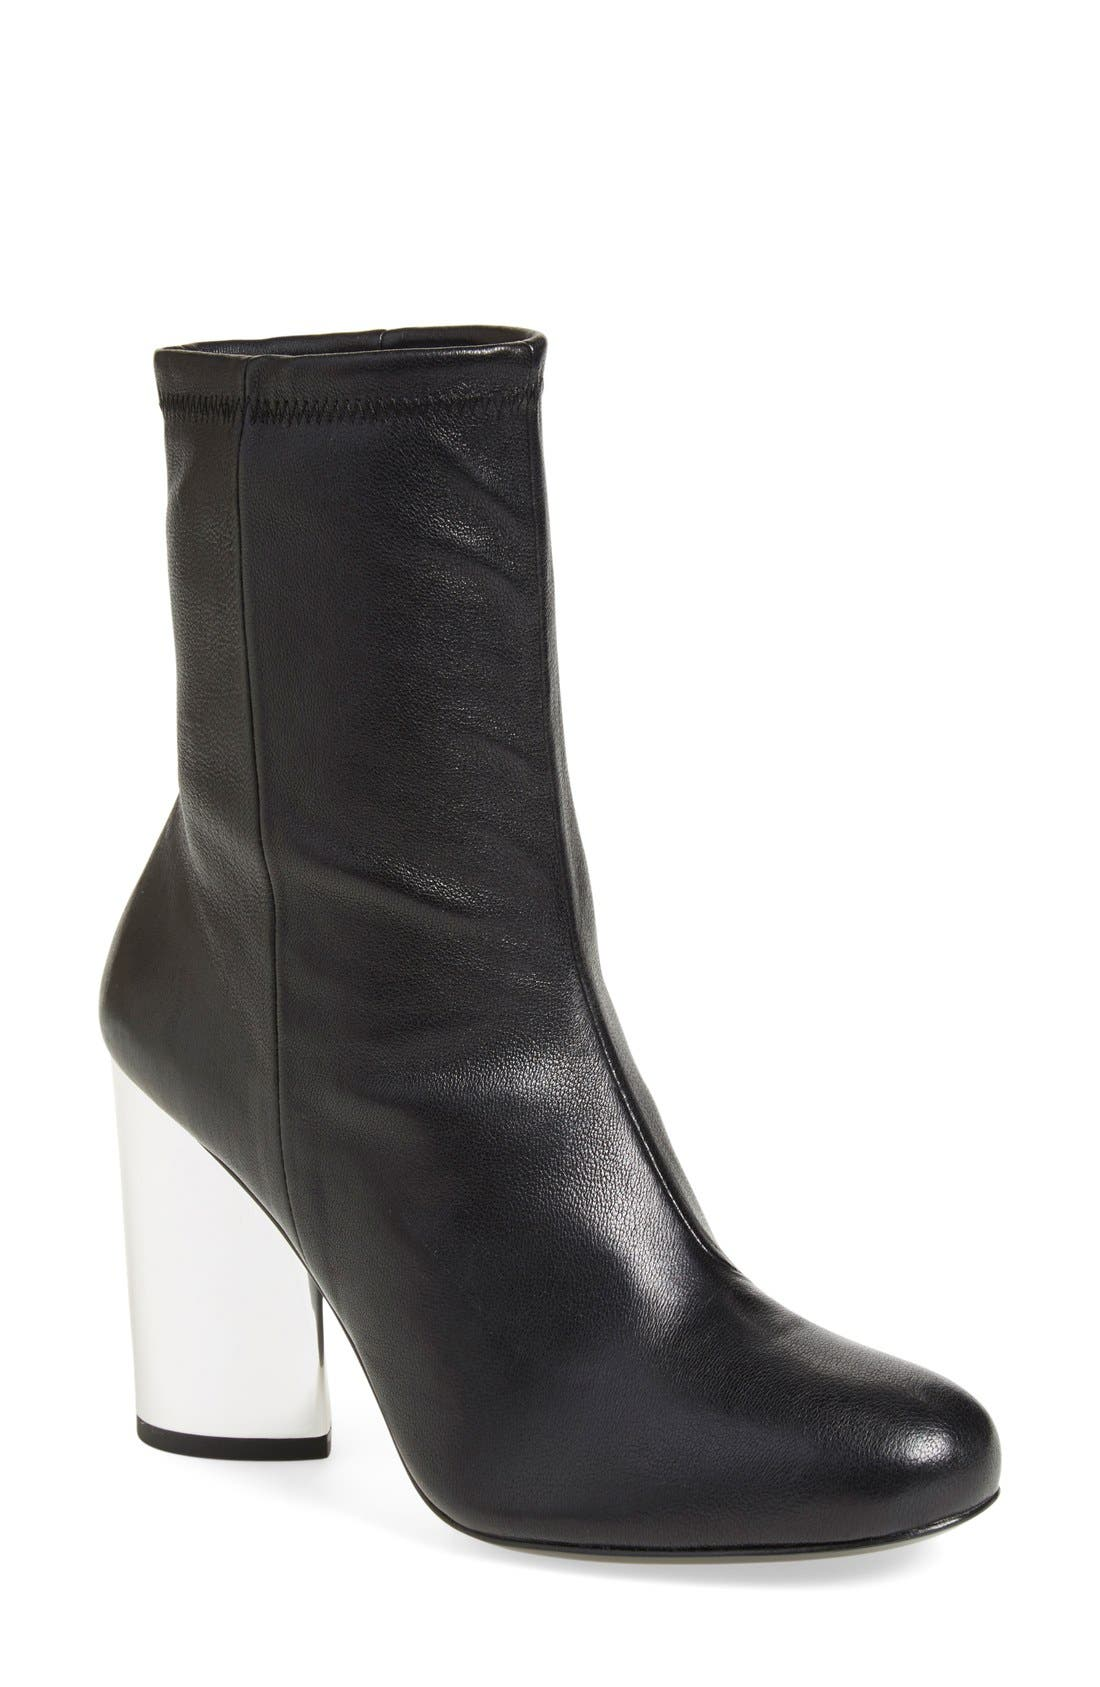 'Zloty' Round Toe Bootie,                             Main thumbnail 1, color,                             002